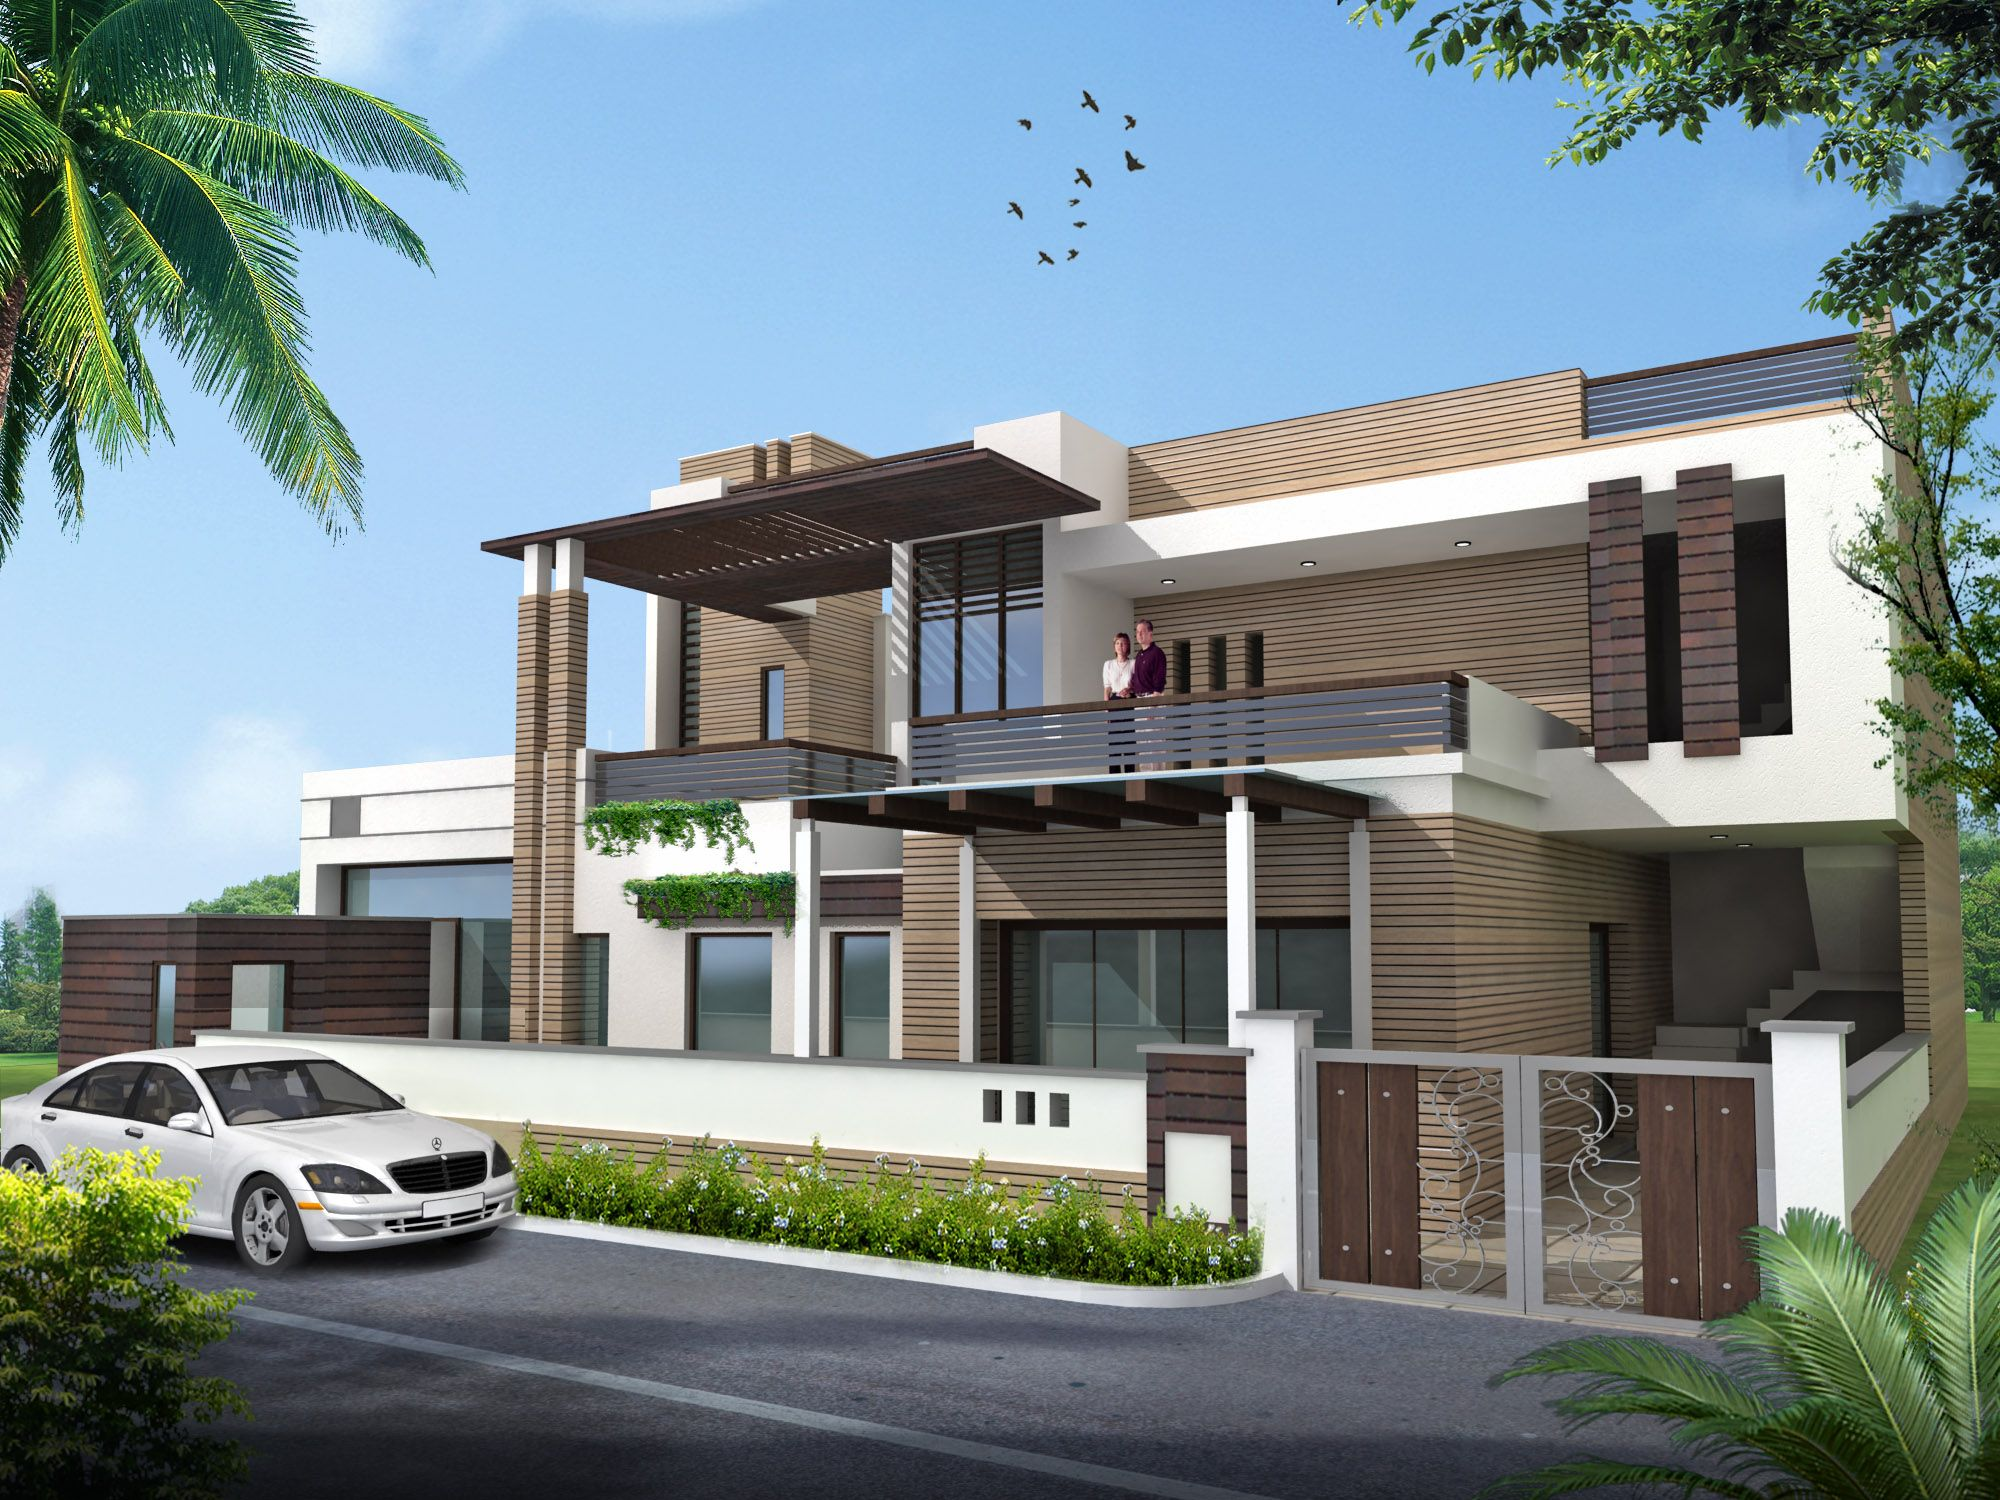 Image for House Designs Outside Awesome Ideas